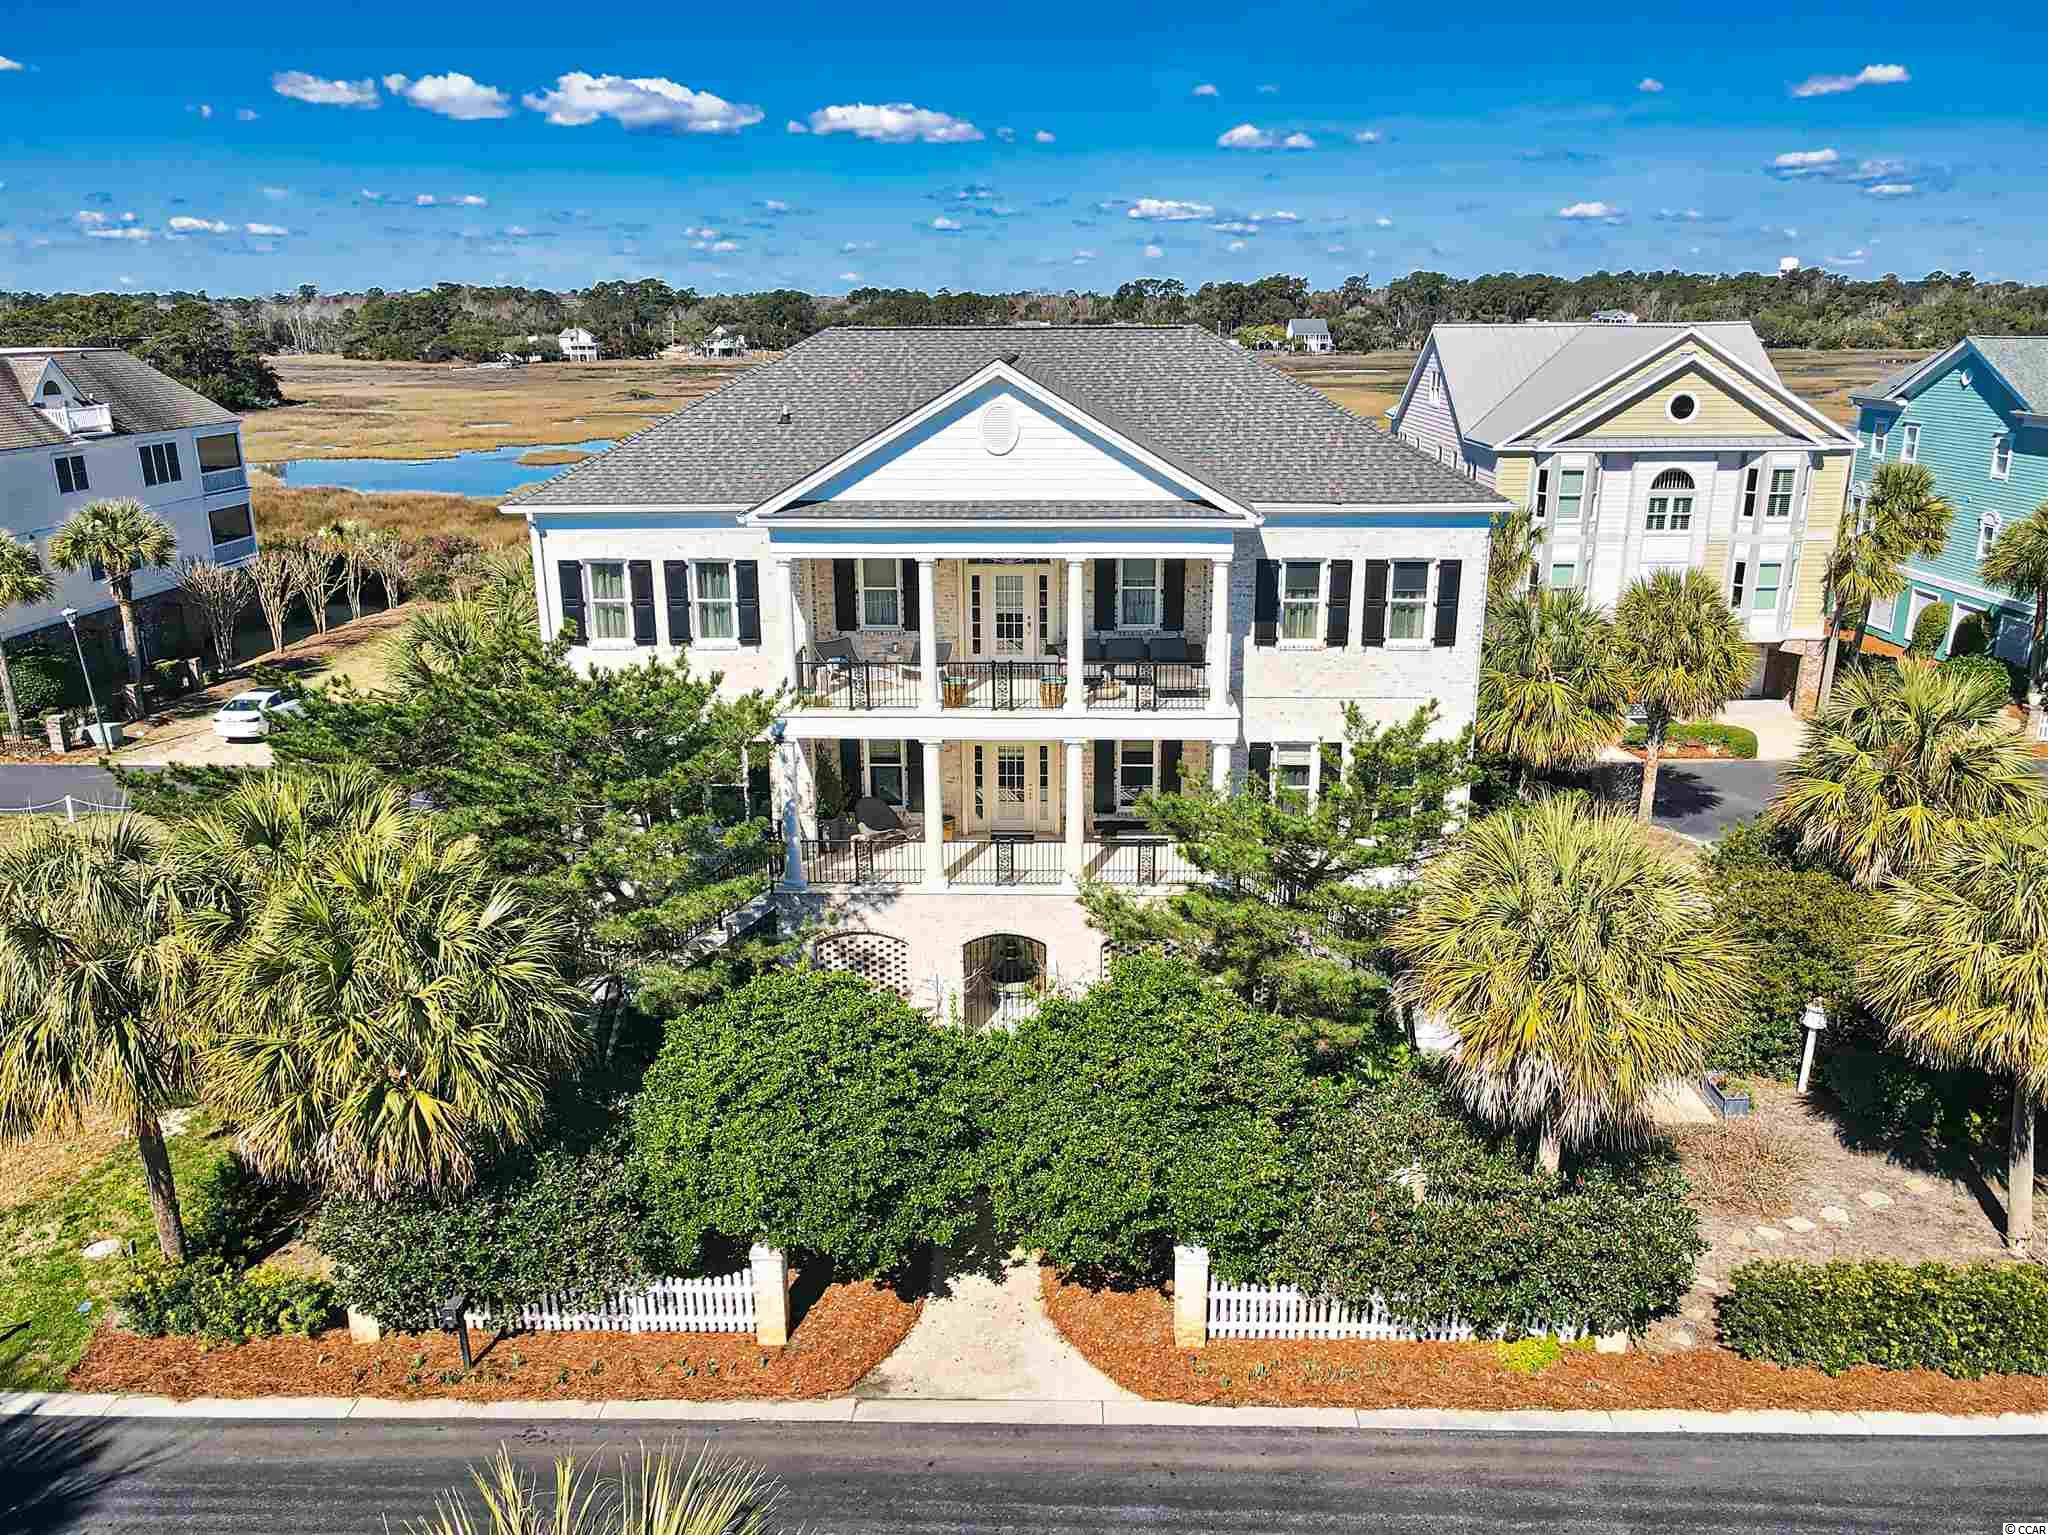 """Welcome to 592 South Dunes Dr! This lovely home is located in Charlestowne Grant, a gated enclave of exclusive Oceanside homes in the gates of desirable Litchfield by the Sea.  This newly updated, stately, all brick home has all the luxuries you have dreamed of in your beach retreat and just a two minute walk to the beach.  This ocean and marsh view home has spacious bedrooms and large living areas perfect for entertaining family and friends.  Timeless quality was applied throughout; exemplified by the reclaimed antique heart pine flooring throughout the bedrooms and living spaces.  All baths feature 24"""" x 24"""" Calacatta marble, Italian sinks, and Italian or German hardware.  Clean-lined beauty, ergonomic perfection and German engineering complete this custom Bulthaup kitchen. Truly a gourmet chef's dream come true, the kitchen features a Miele refrigerator and freezer, Miele oven, Fisher Paykel dishwasher drawers, and GE Profile smooth cooktop.  Share a special meal together with guests in the spacious dining room with light reflected from the marsh.  Enjoy Cocktails on the upstairs veranda, especially in Summer when the porch is shaded and we have a cool, beautiful breeze off the ocean.  The master suite boasts of a fireplace, amazing custom walk in closet, tub and Calacatta marble shower. Navien Tankless Hot Water Heater – propane fuel and a circulator mean you never wait and have bottomless hot water.  On the main level there is a handsome study that could be used as a fourth bedroom or playroom.  Other features of this well-appointed home include:  gas fireplace in living room, 10' ceilings upstairs and down, elevator, beach shower and bathroom in the garage.   The exterior has lush, mature landscaping, hurricane shutters and gated entry with a fountain.  Enjoy views of the Atlantic Ocean from the front porches and marsh views from the back.  592 South Dunes Drive is a private home and has never been rented.  Litchfield by the Sea owners enjoy private beach acce"""